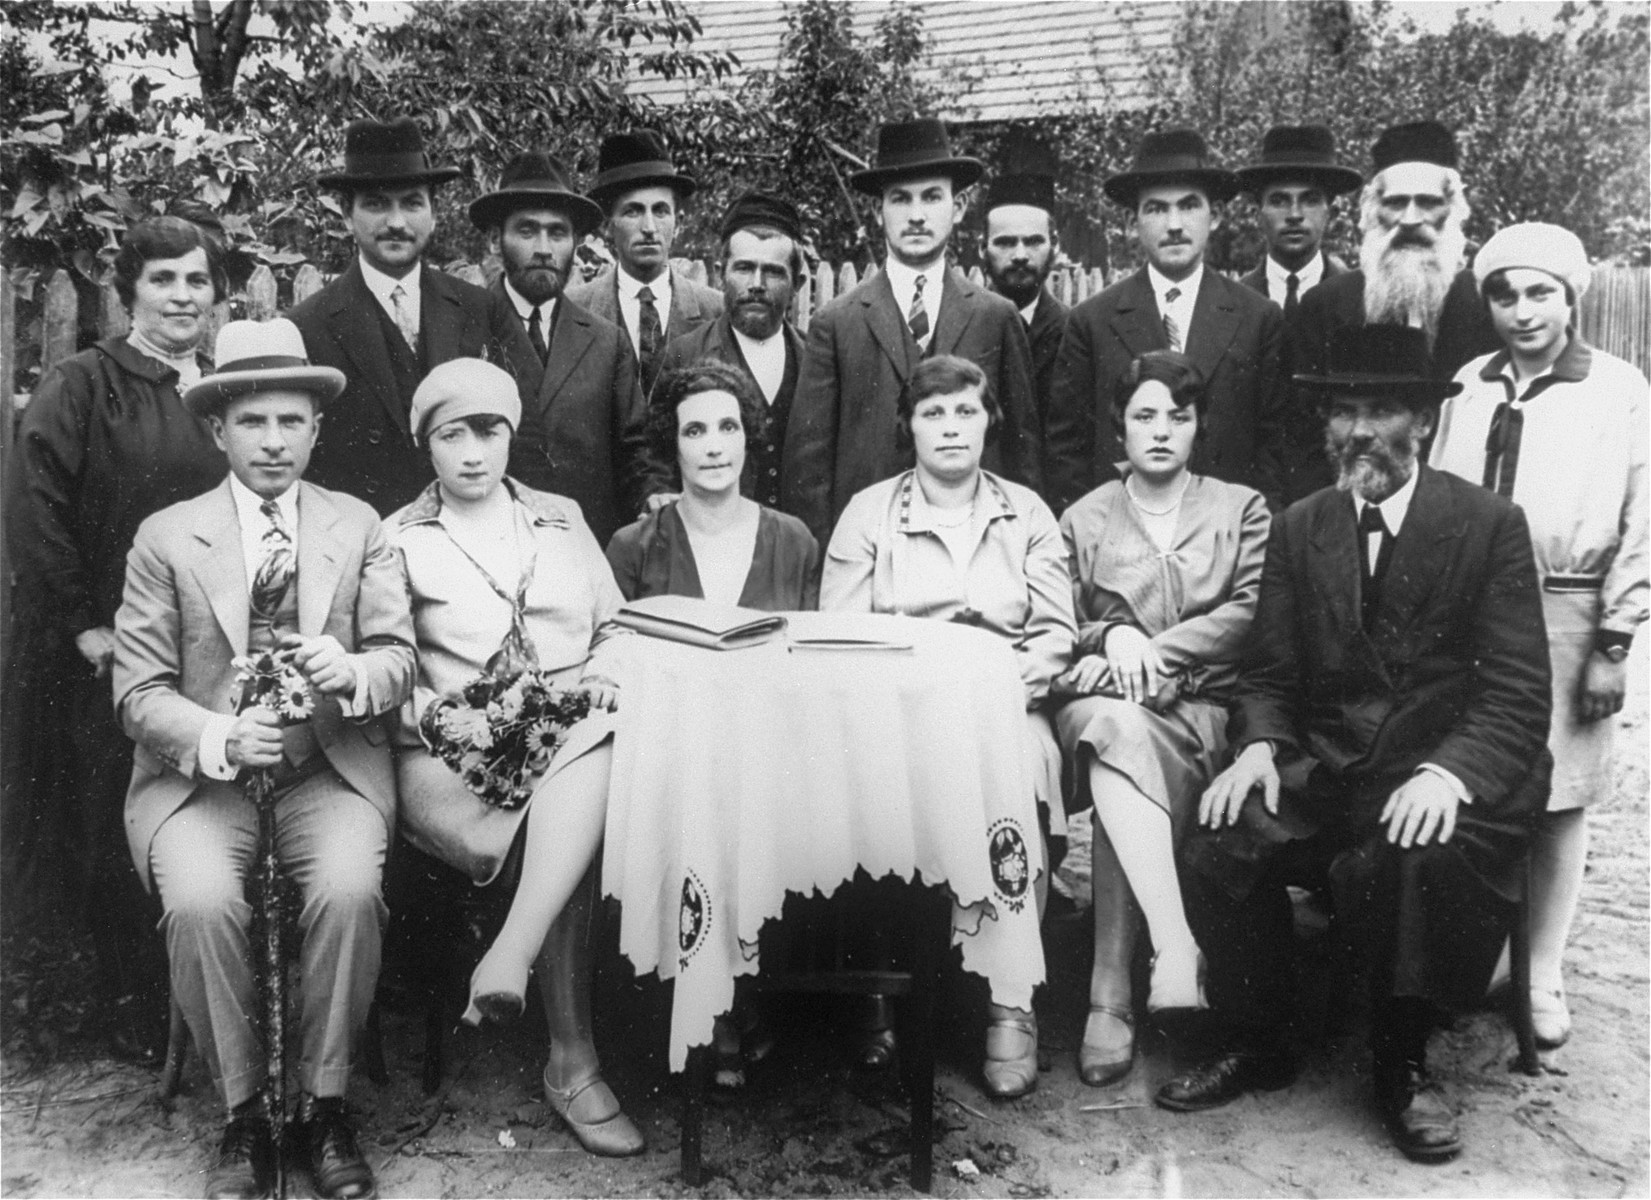 Family portrait of Herszkowitz family in Pacanow.